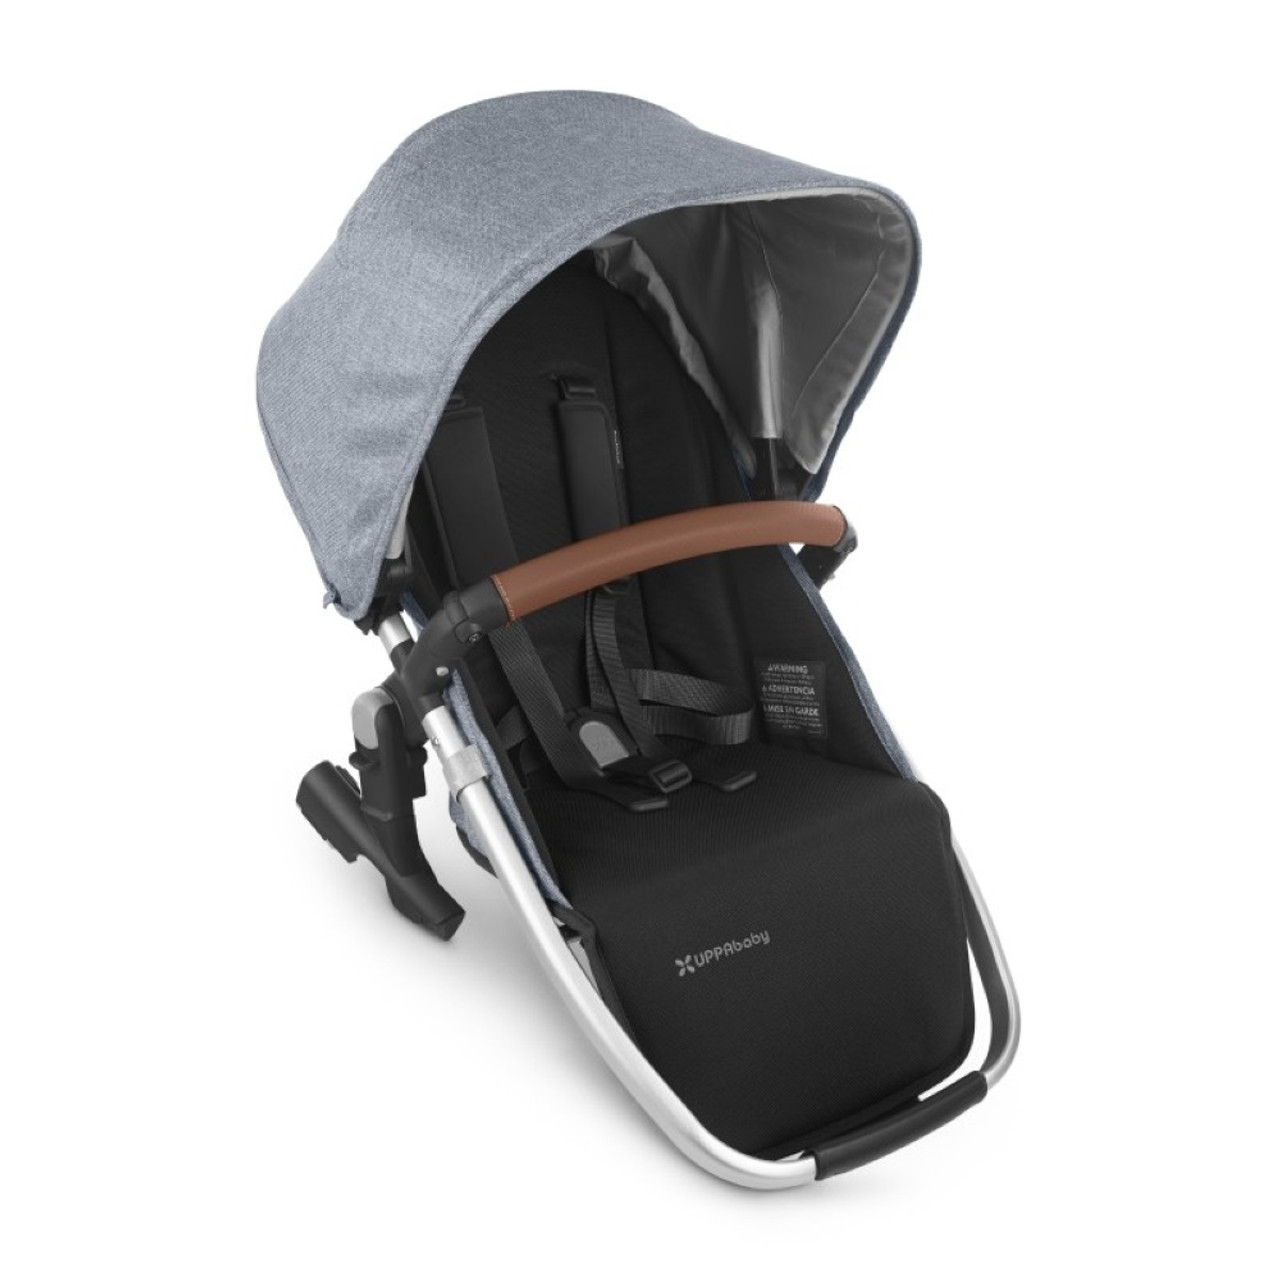 UPPAbaby VISTA V2 2020 Rumble Seat – GREGORY